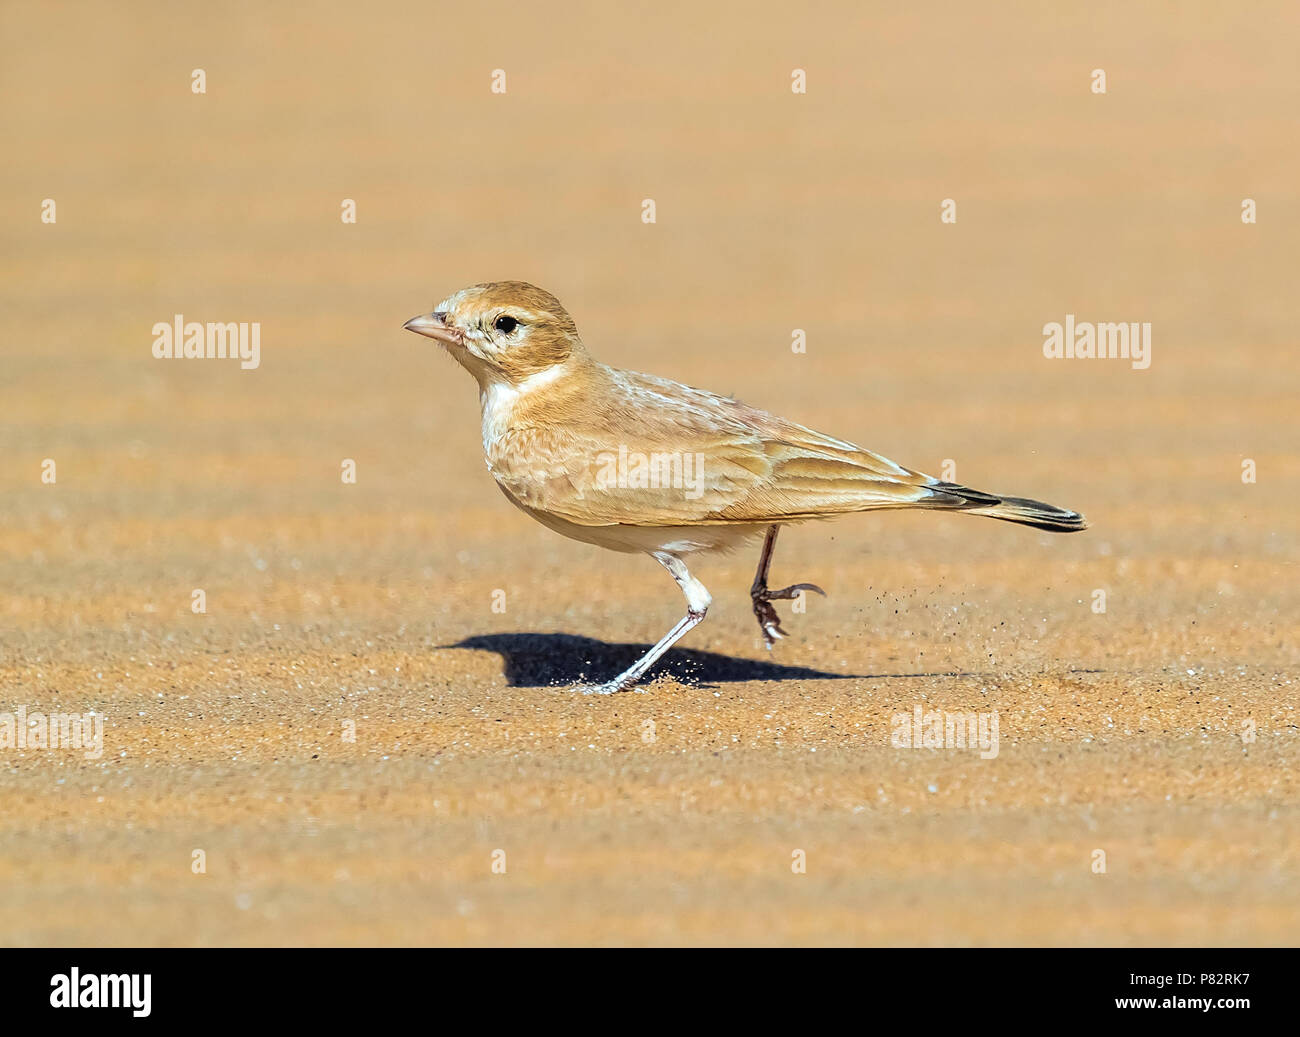 Adult Bar-tailed Lark running in desert aroud 40km West of Choum, Mauritania. April 04, 2018. - Stock Image